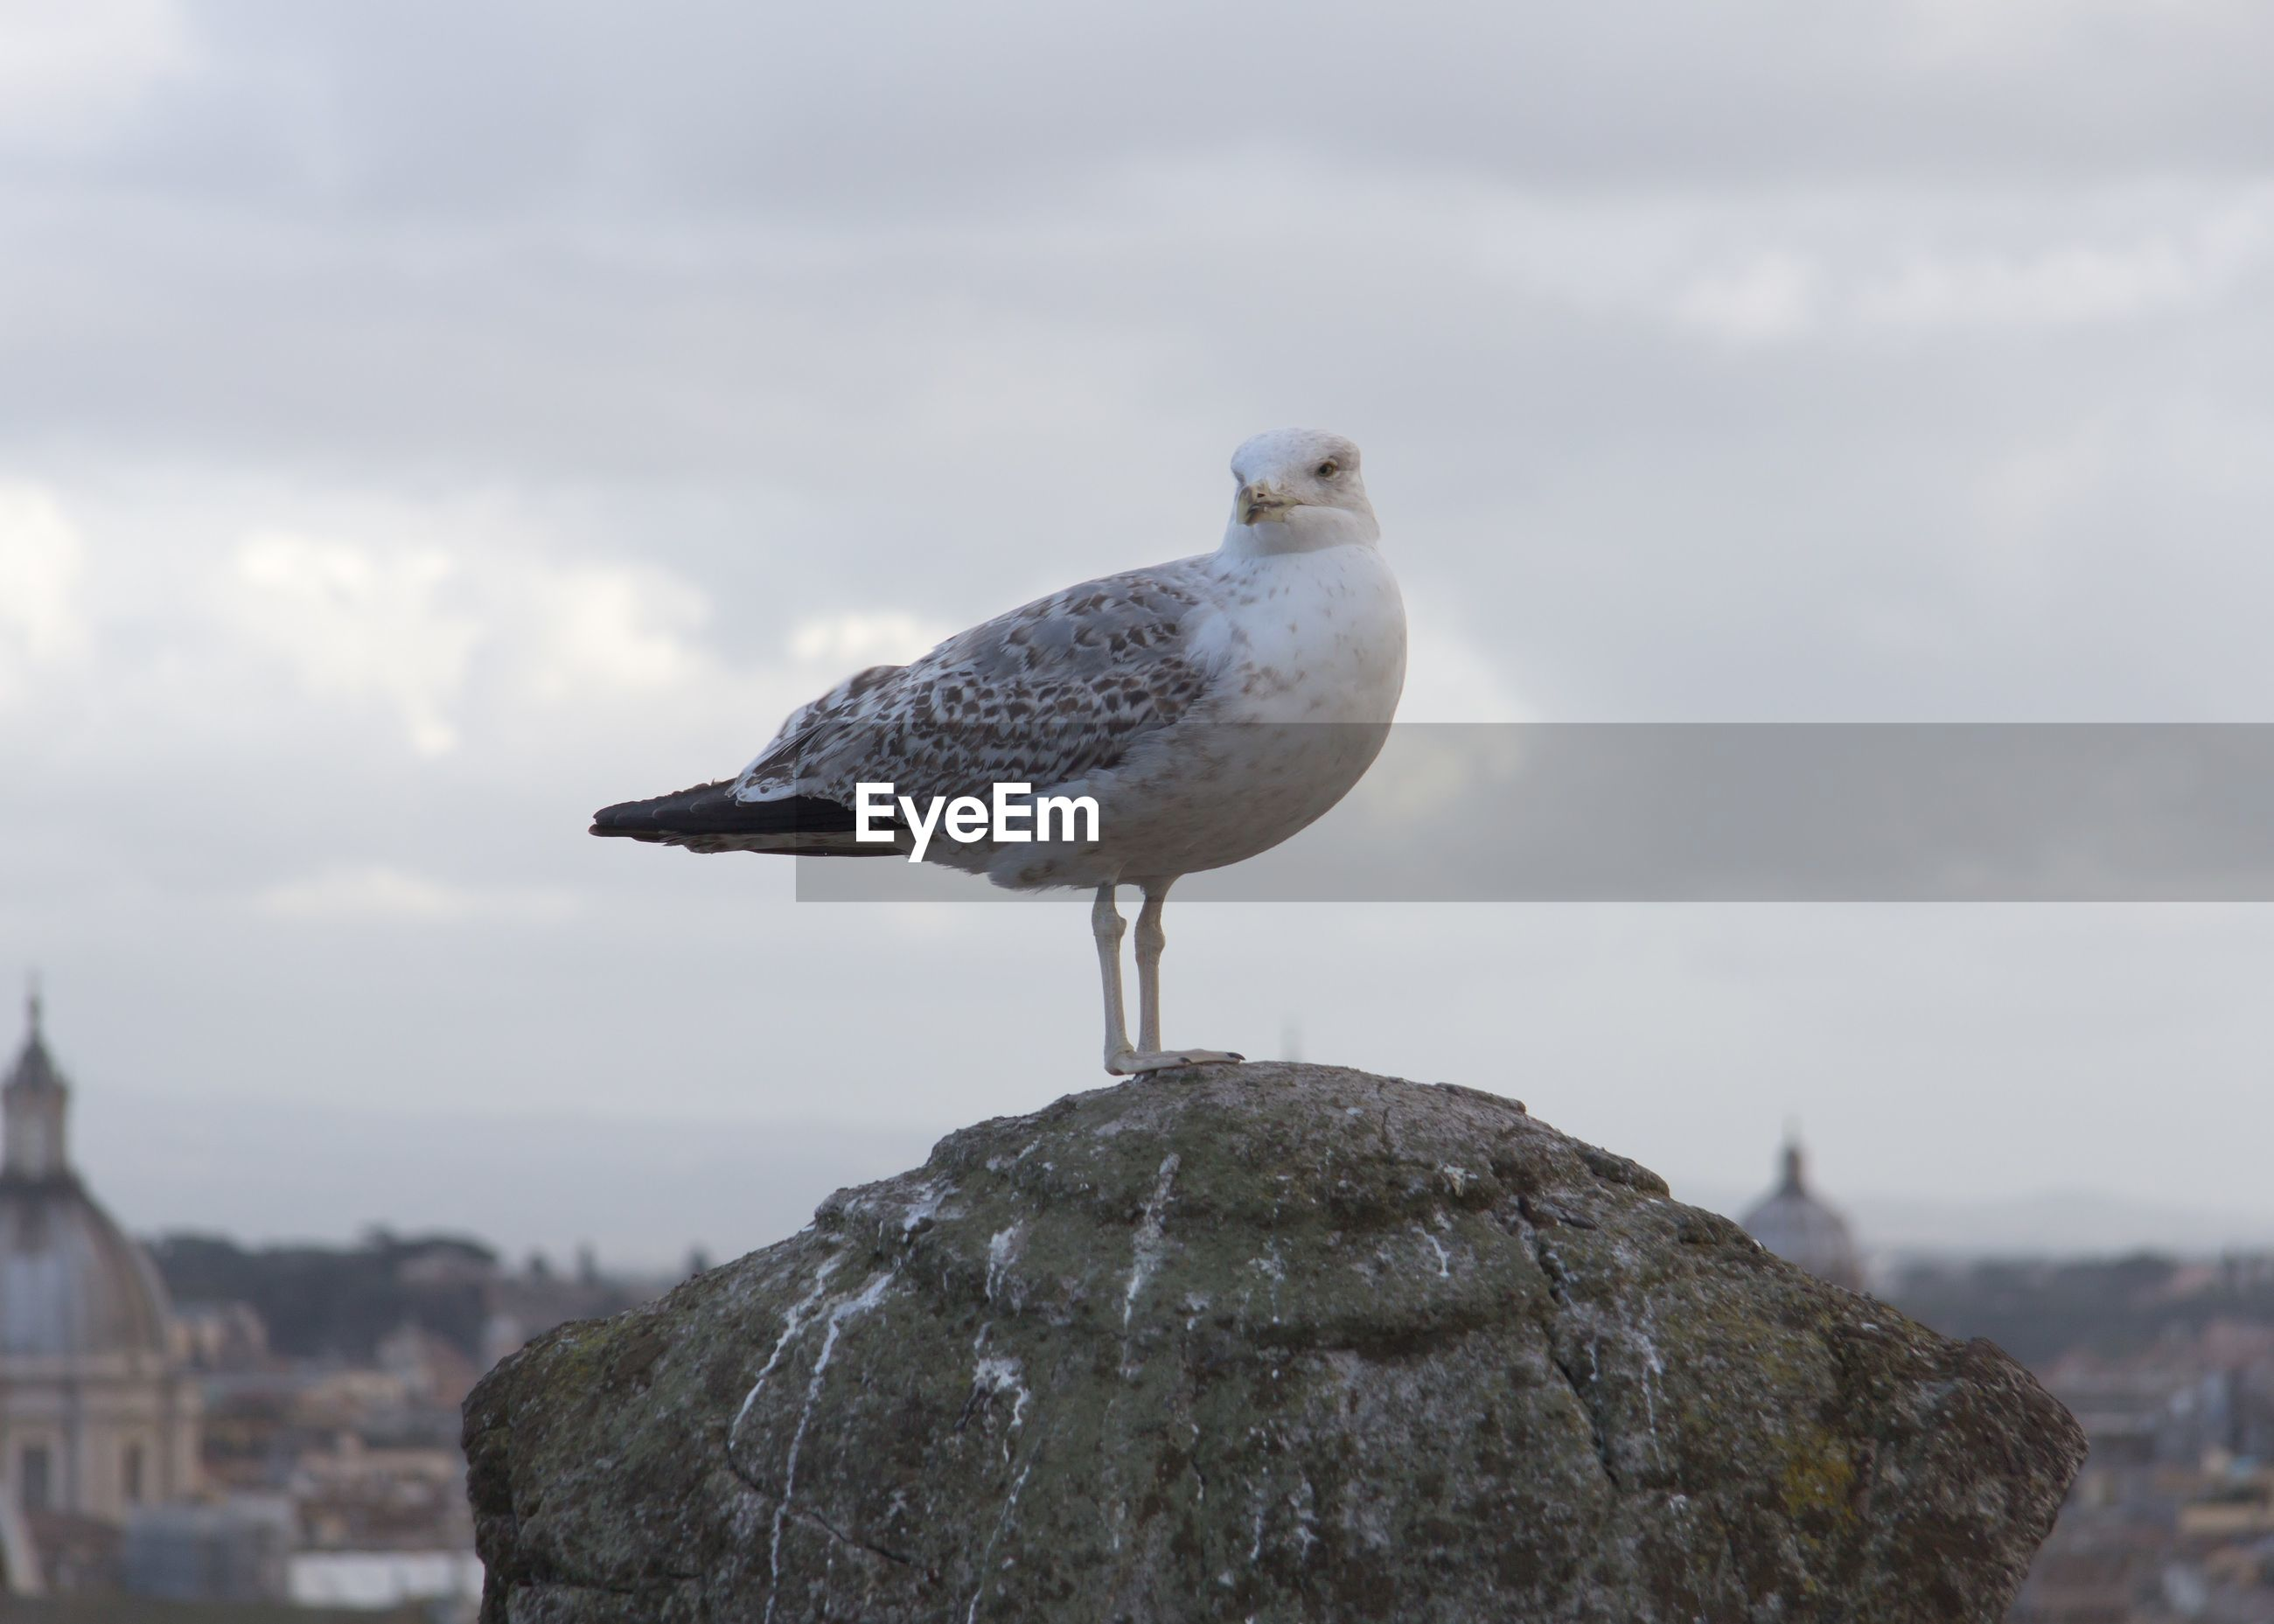 Close-up of seagull perching on rock against sky